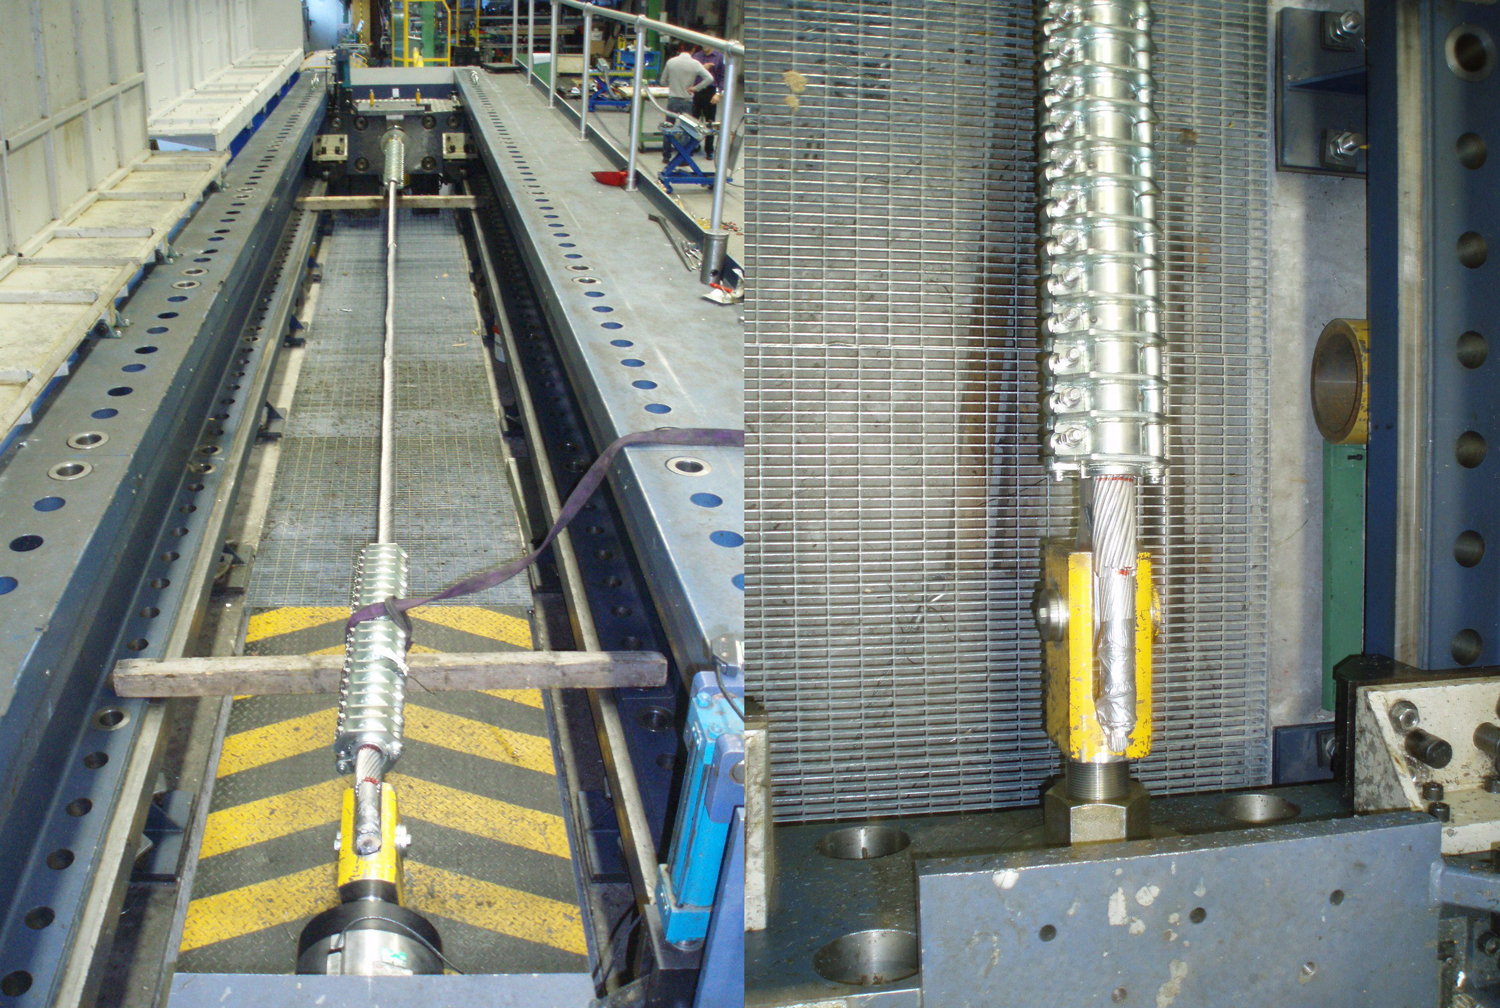 A complete range of accessories and tools for overhead stringing by Tesmec